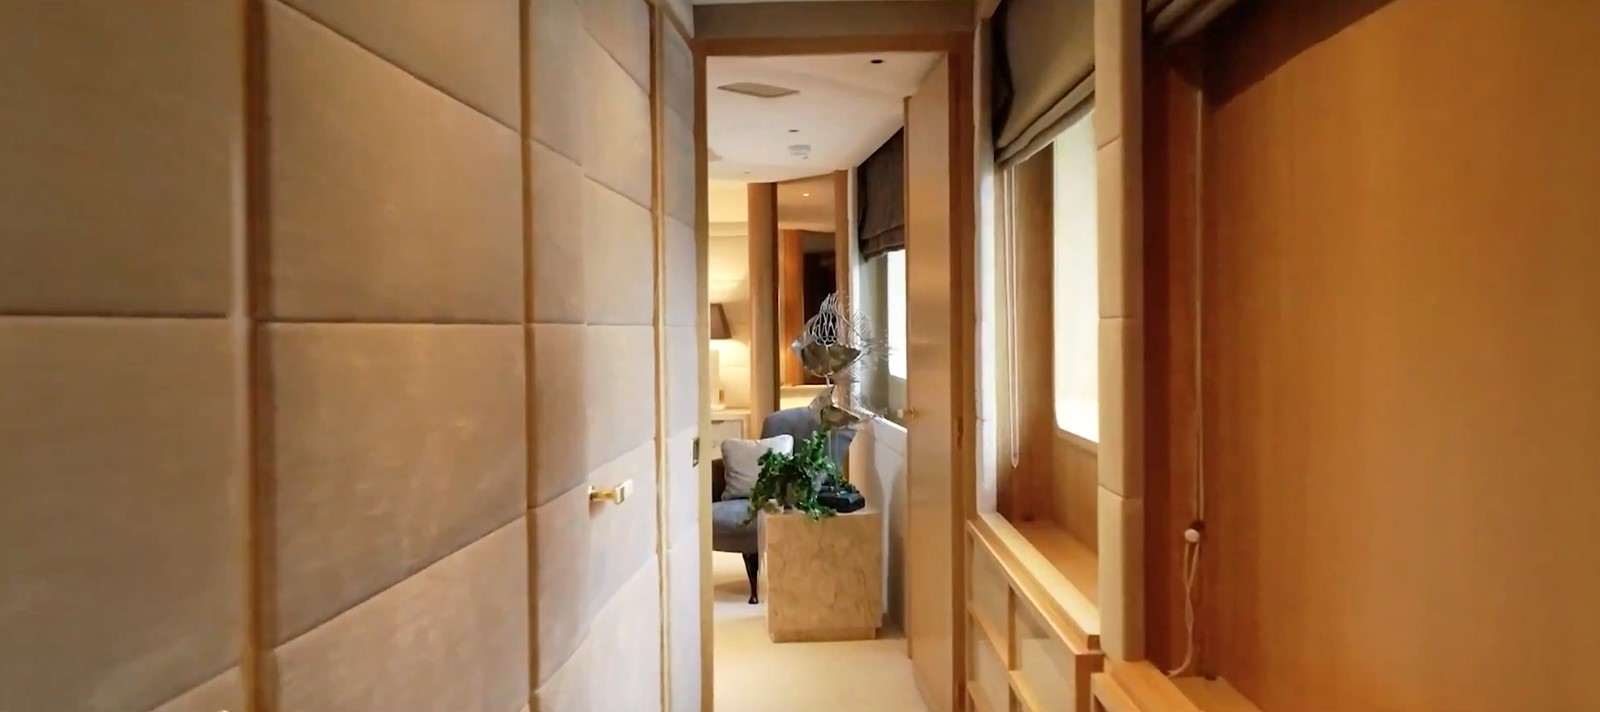 Master Stateroom Hallway - 162 OCEANCO For Sale